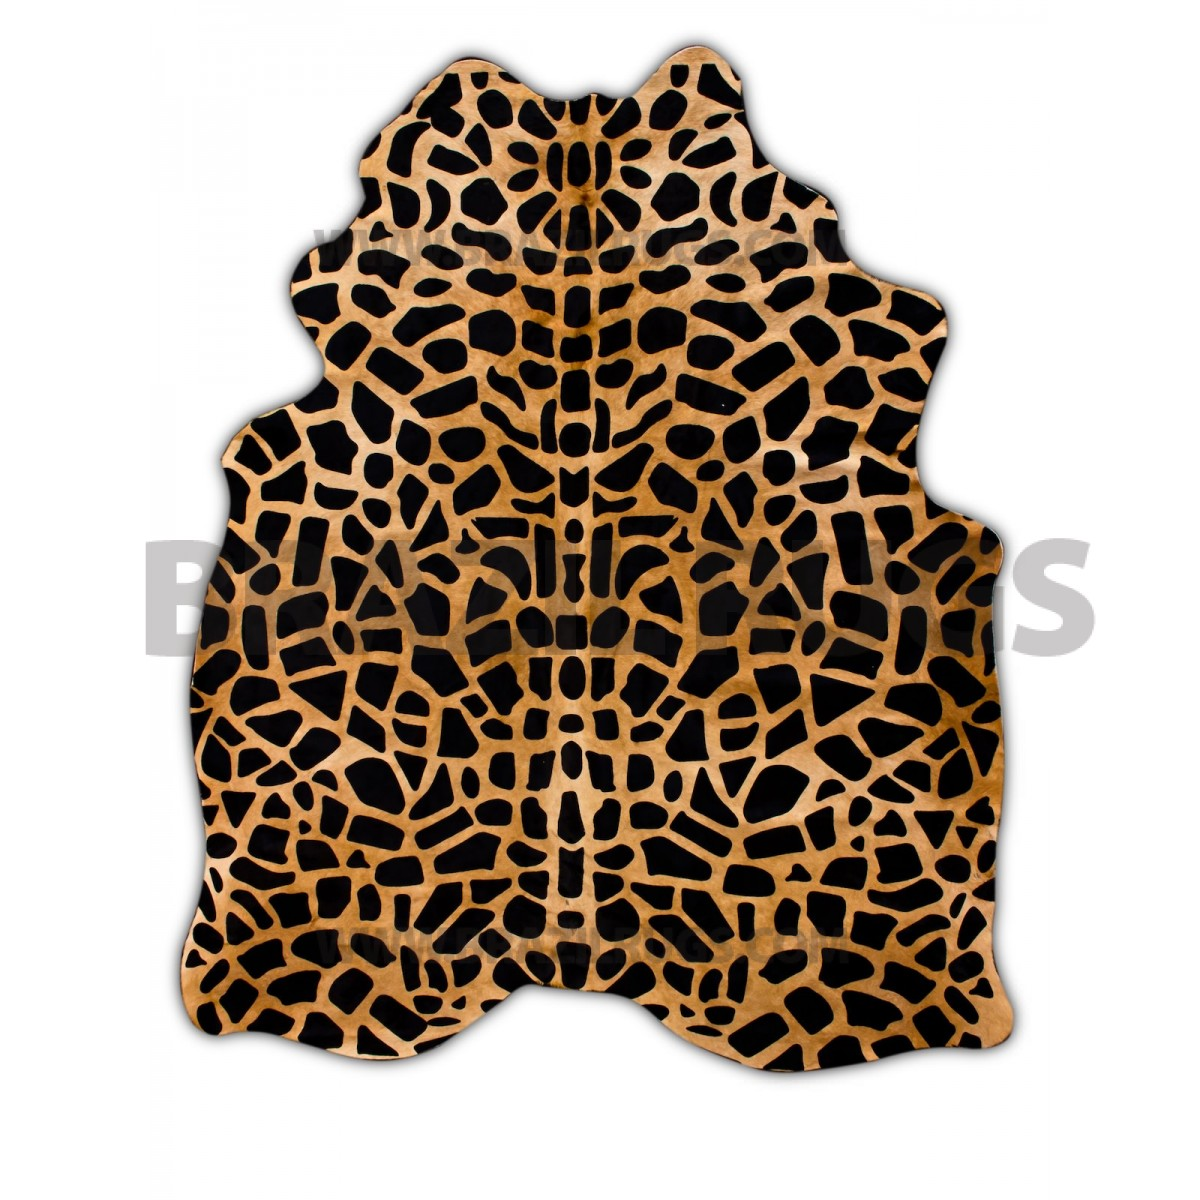 Featured Photo of The Leopard Home Decor For The Special Purpose